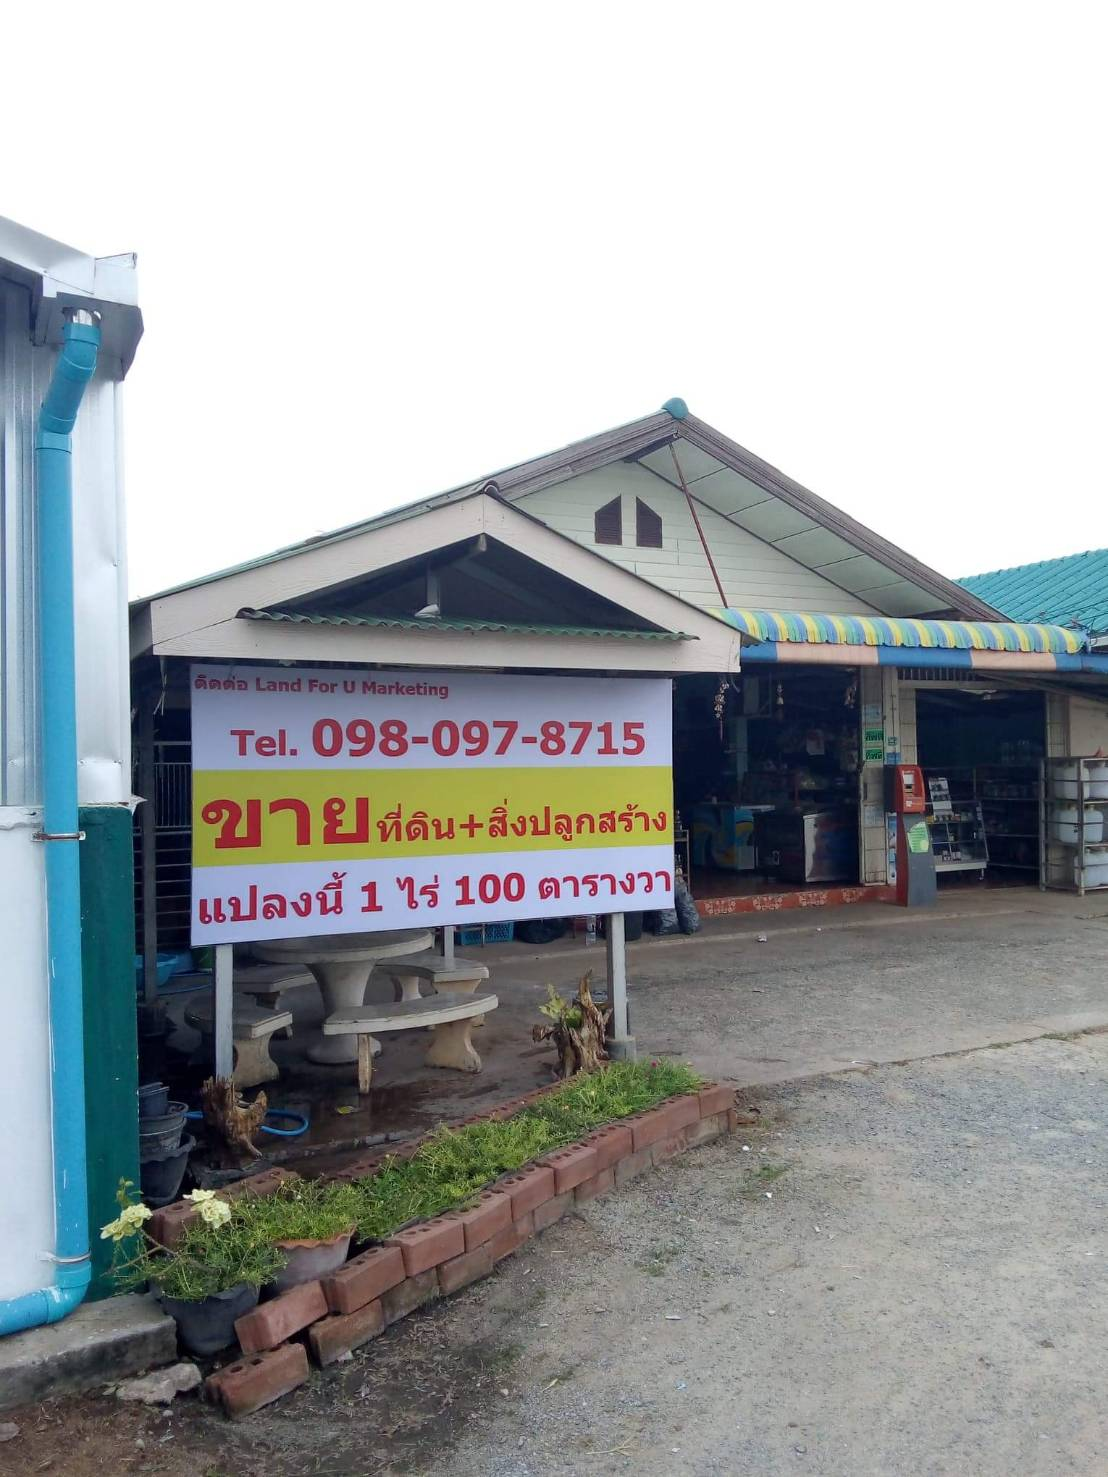 Land for sale in Pak Chong, on the road Including houses and businesses Khanong Phra Subdistrict, Pak Chong District, Nakhon Ratchasima Province Area 1 Rai 107 Square Wah